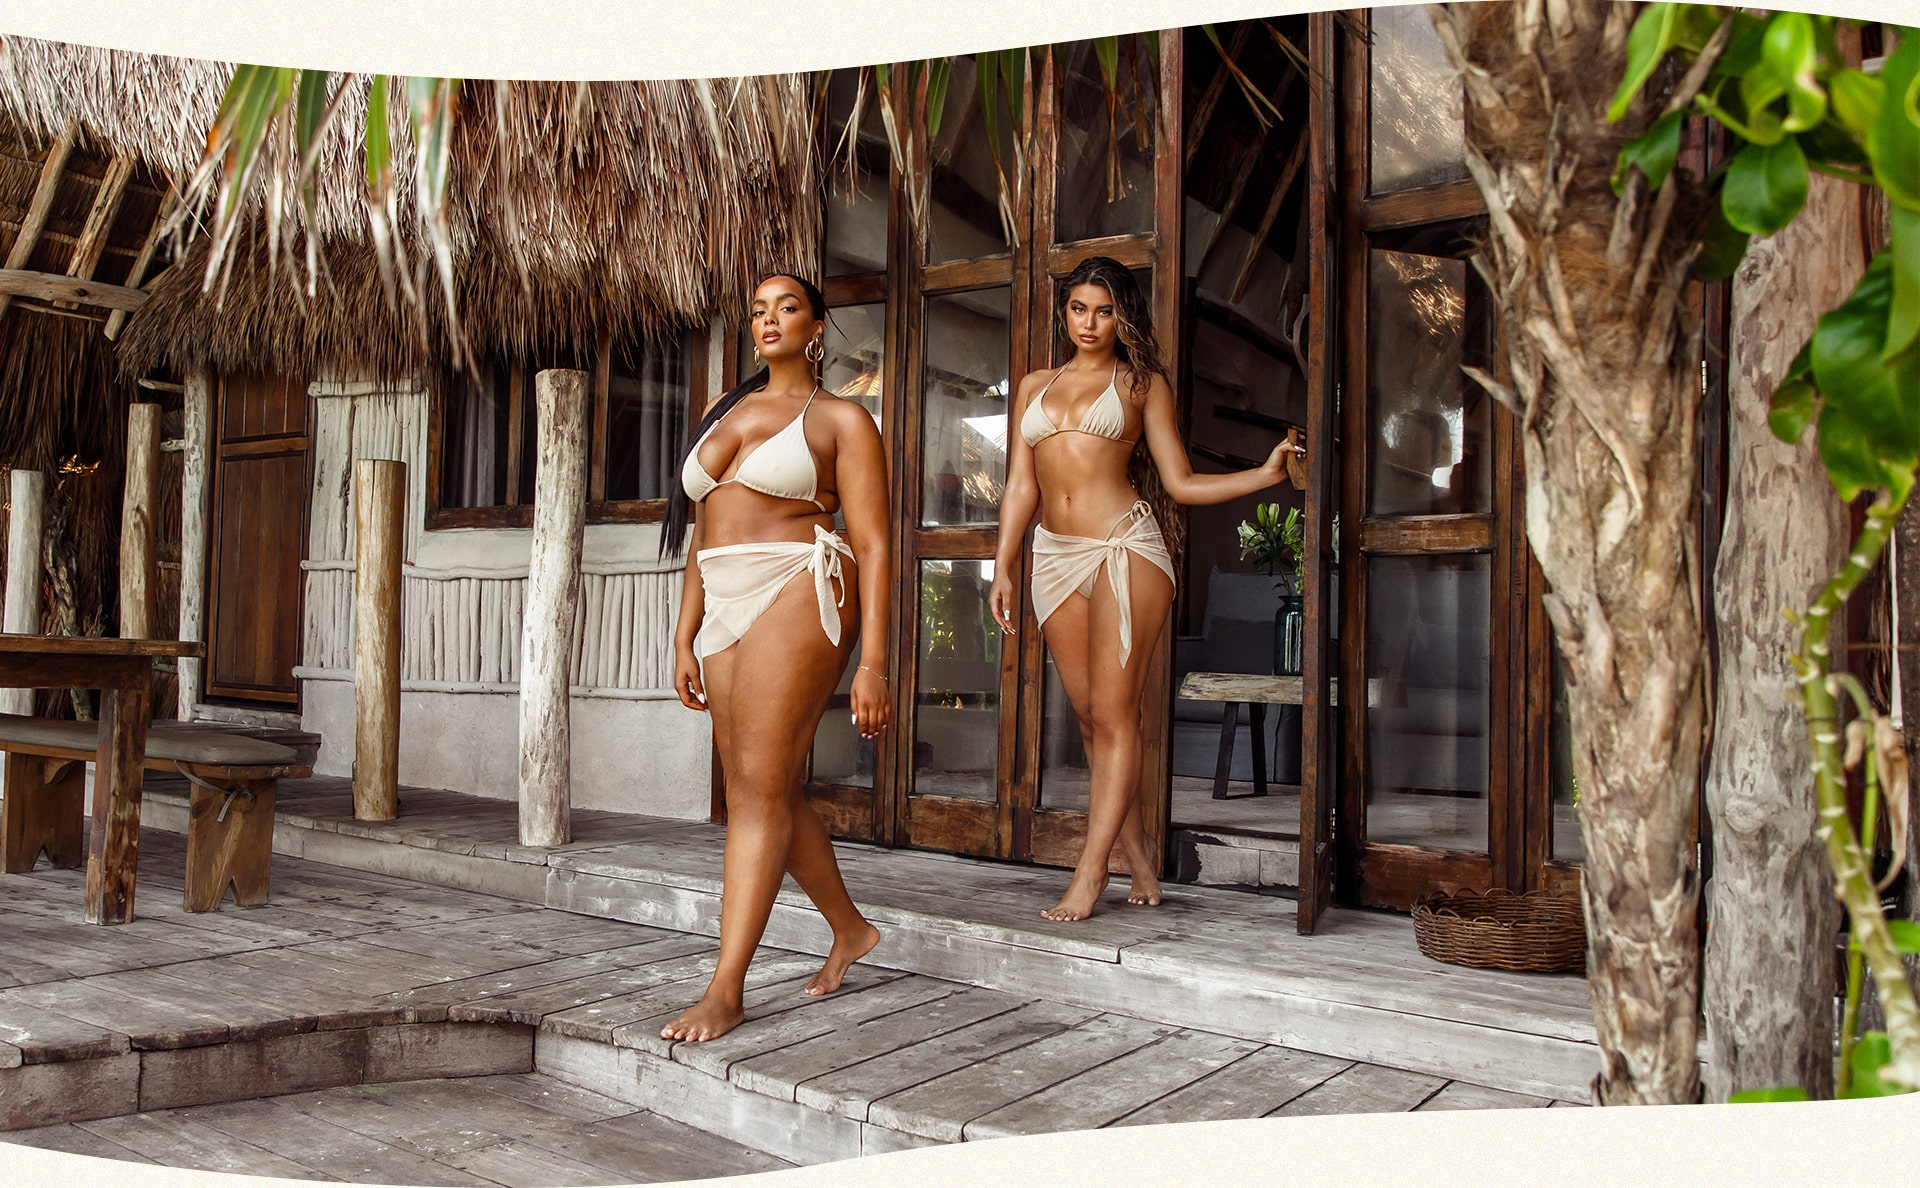 Destination Swim Tulum Lookbook Image Desktop 11